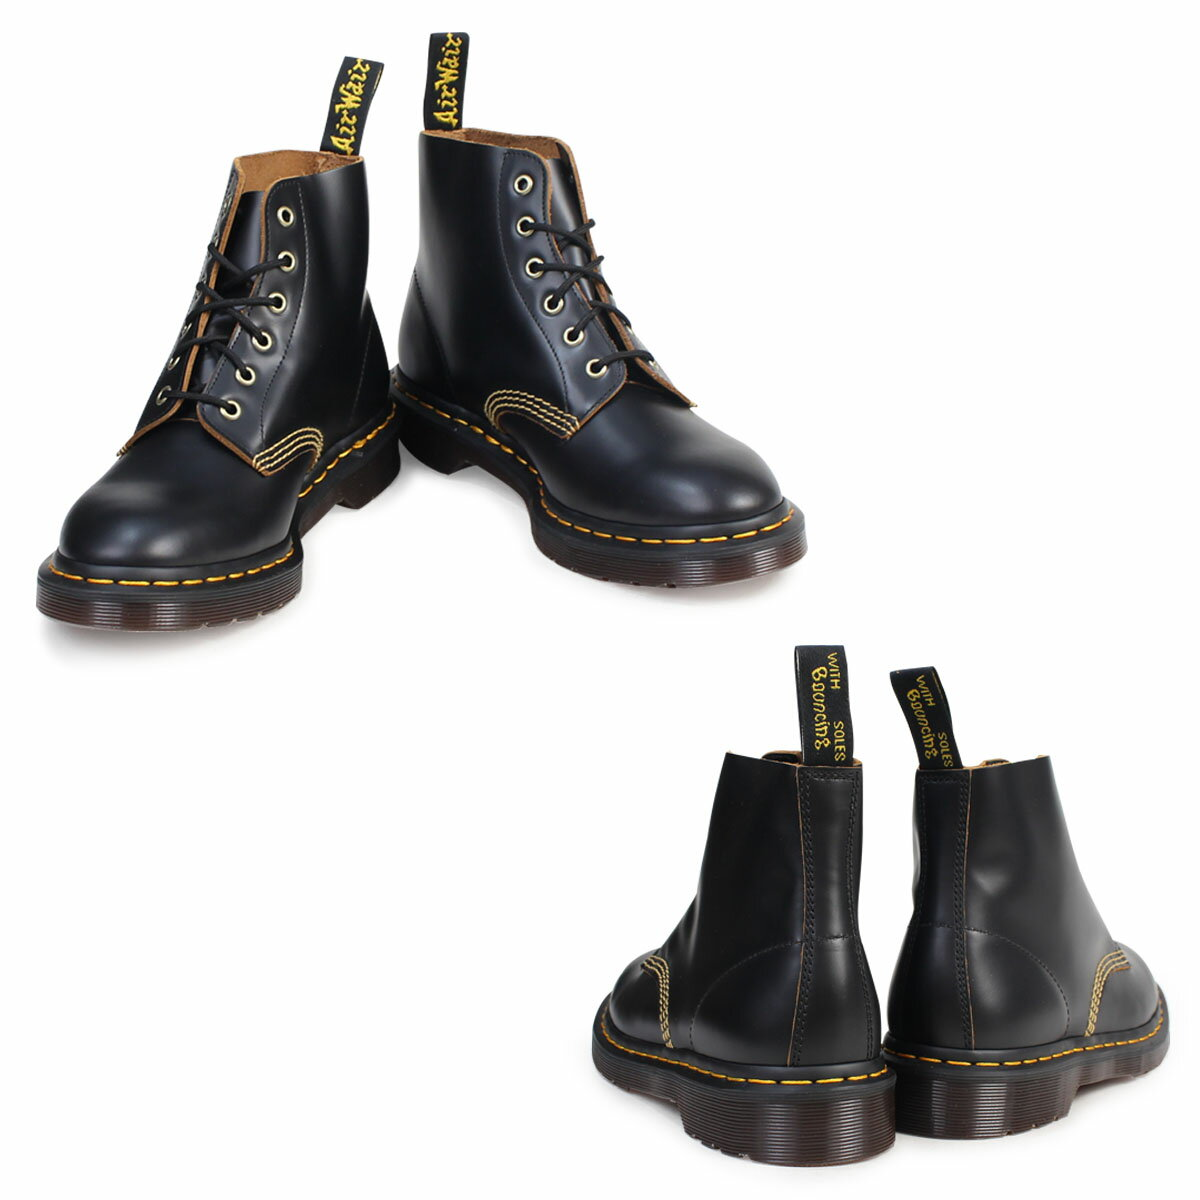 ff7c5ecb70f72 Doctor Martin 6 hall men gap Dis Dr.Martens boots ARCHIVE 101 6EYE BOOT  R22701001 black